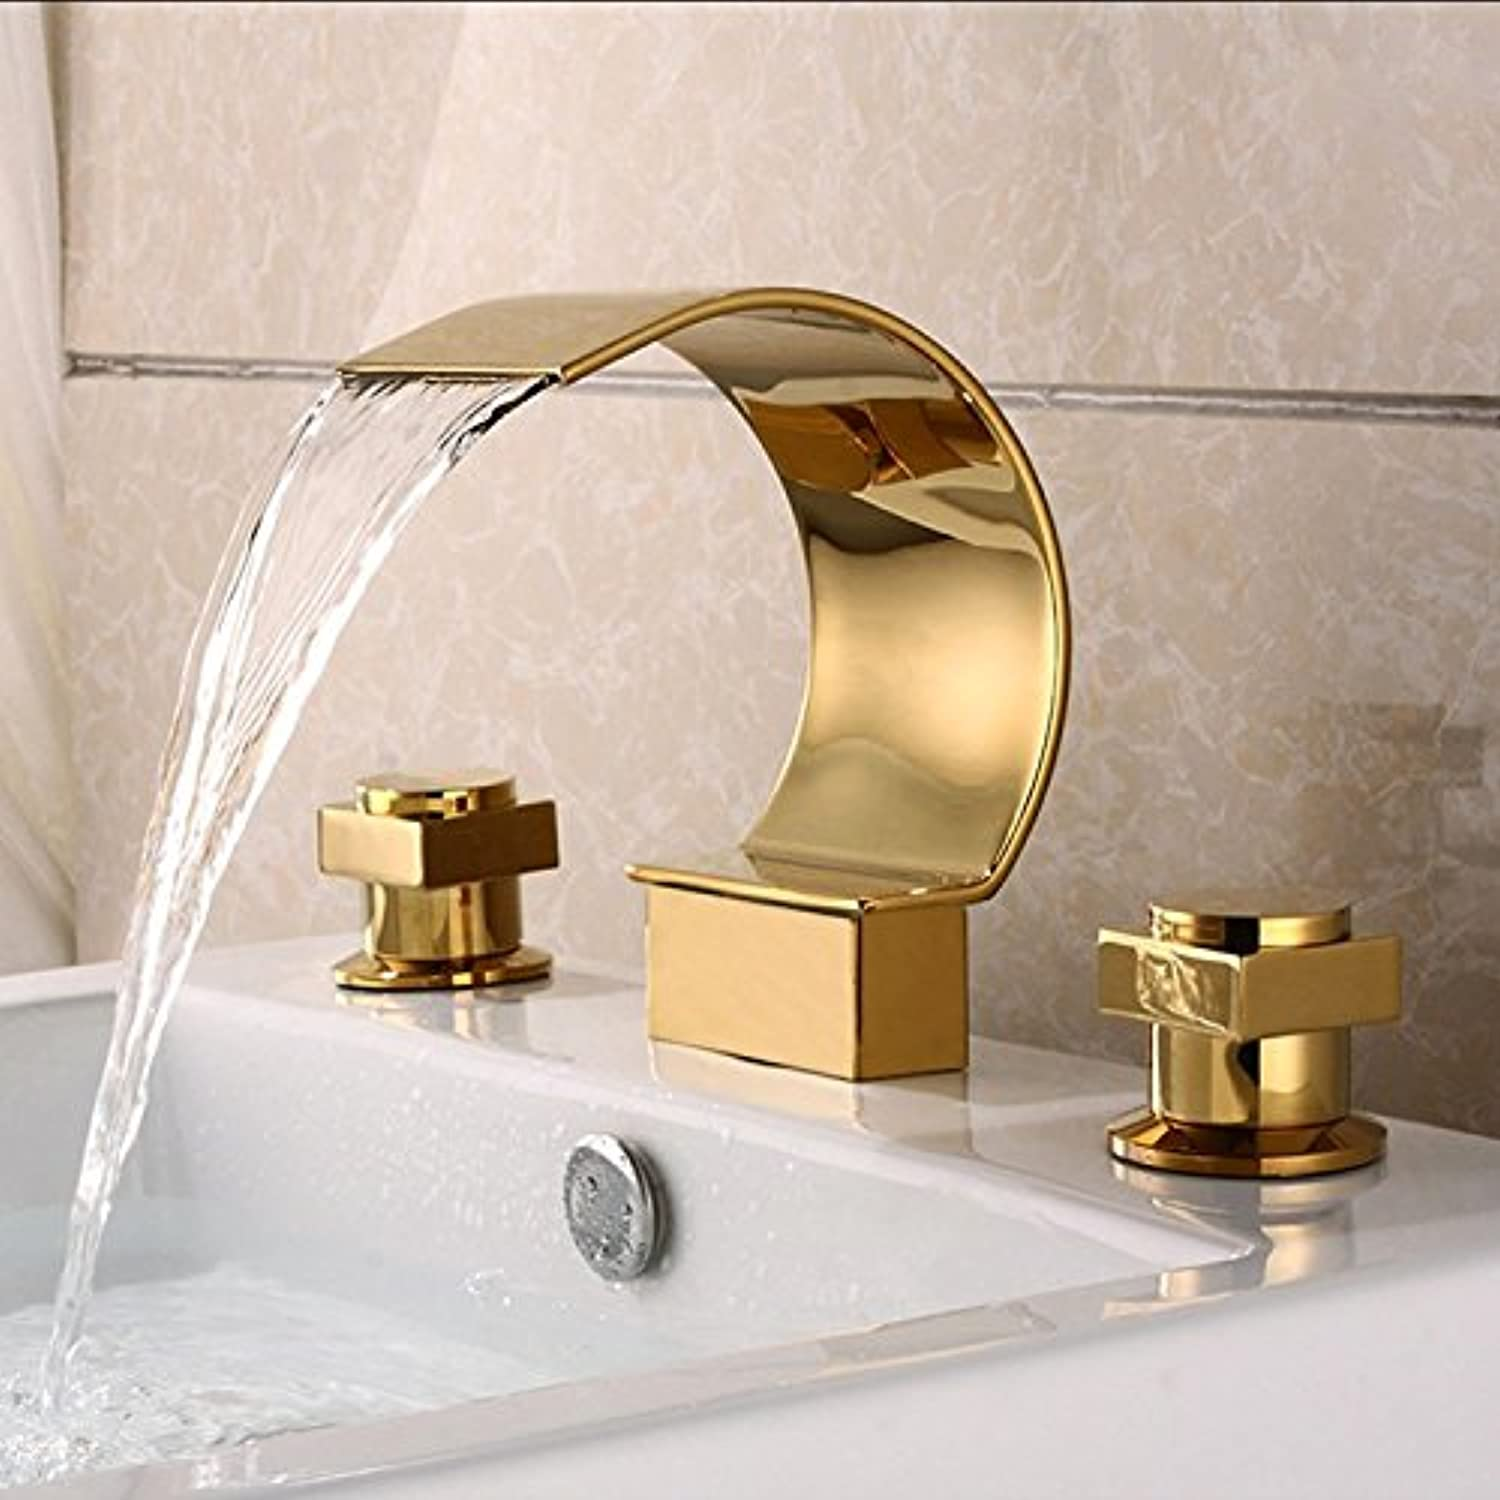 Taps gold finish brass deck mounted Waterfall basin curved design